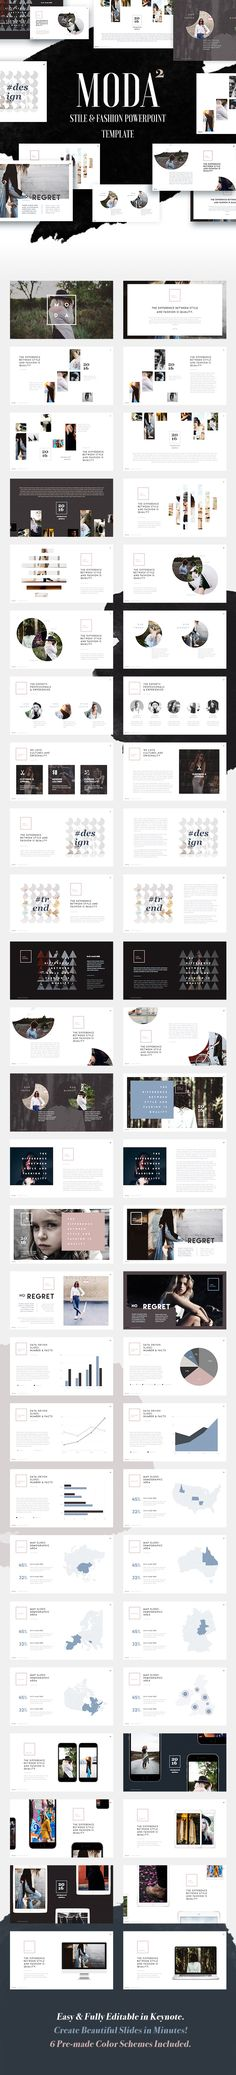 Fashion and Style Powerpoint Template (Moda 2) - PowerPoint Templates Presentation Templates